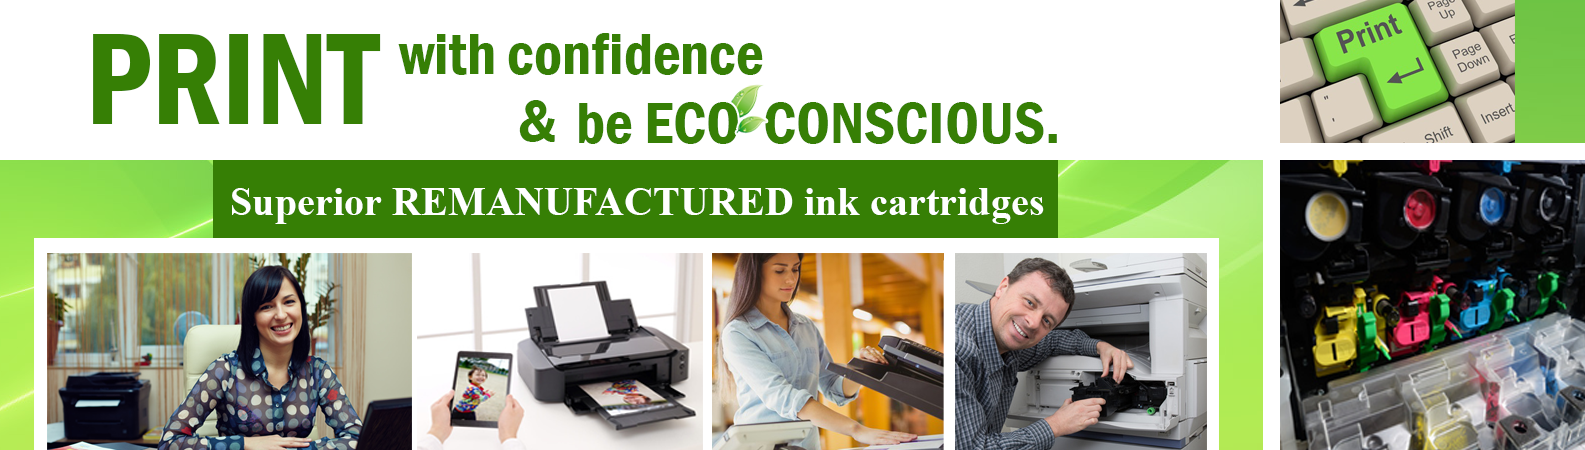 Ink Cartridges be eco-conscious